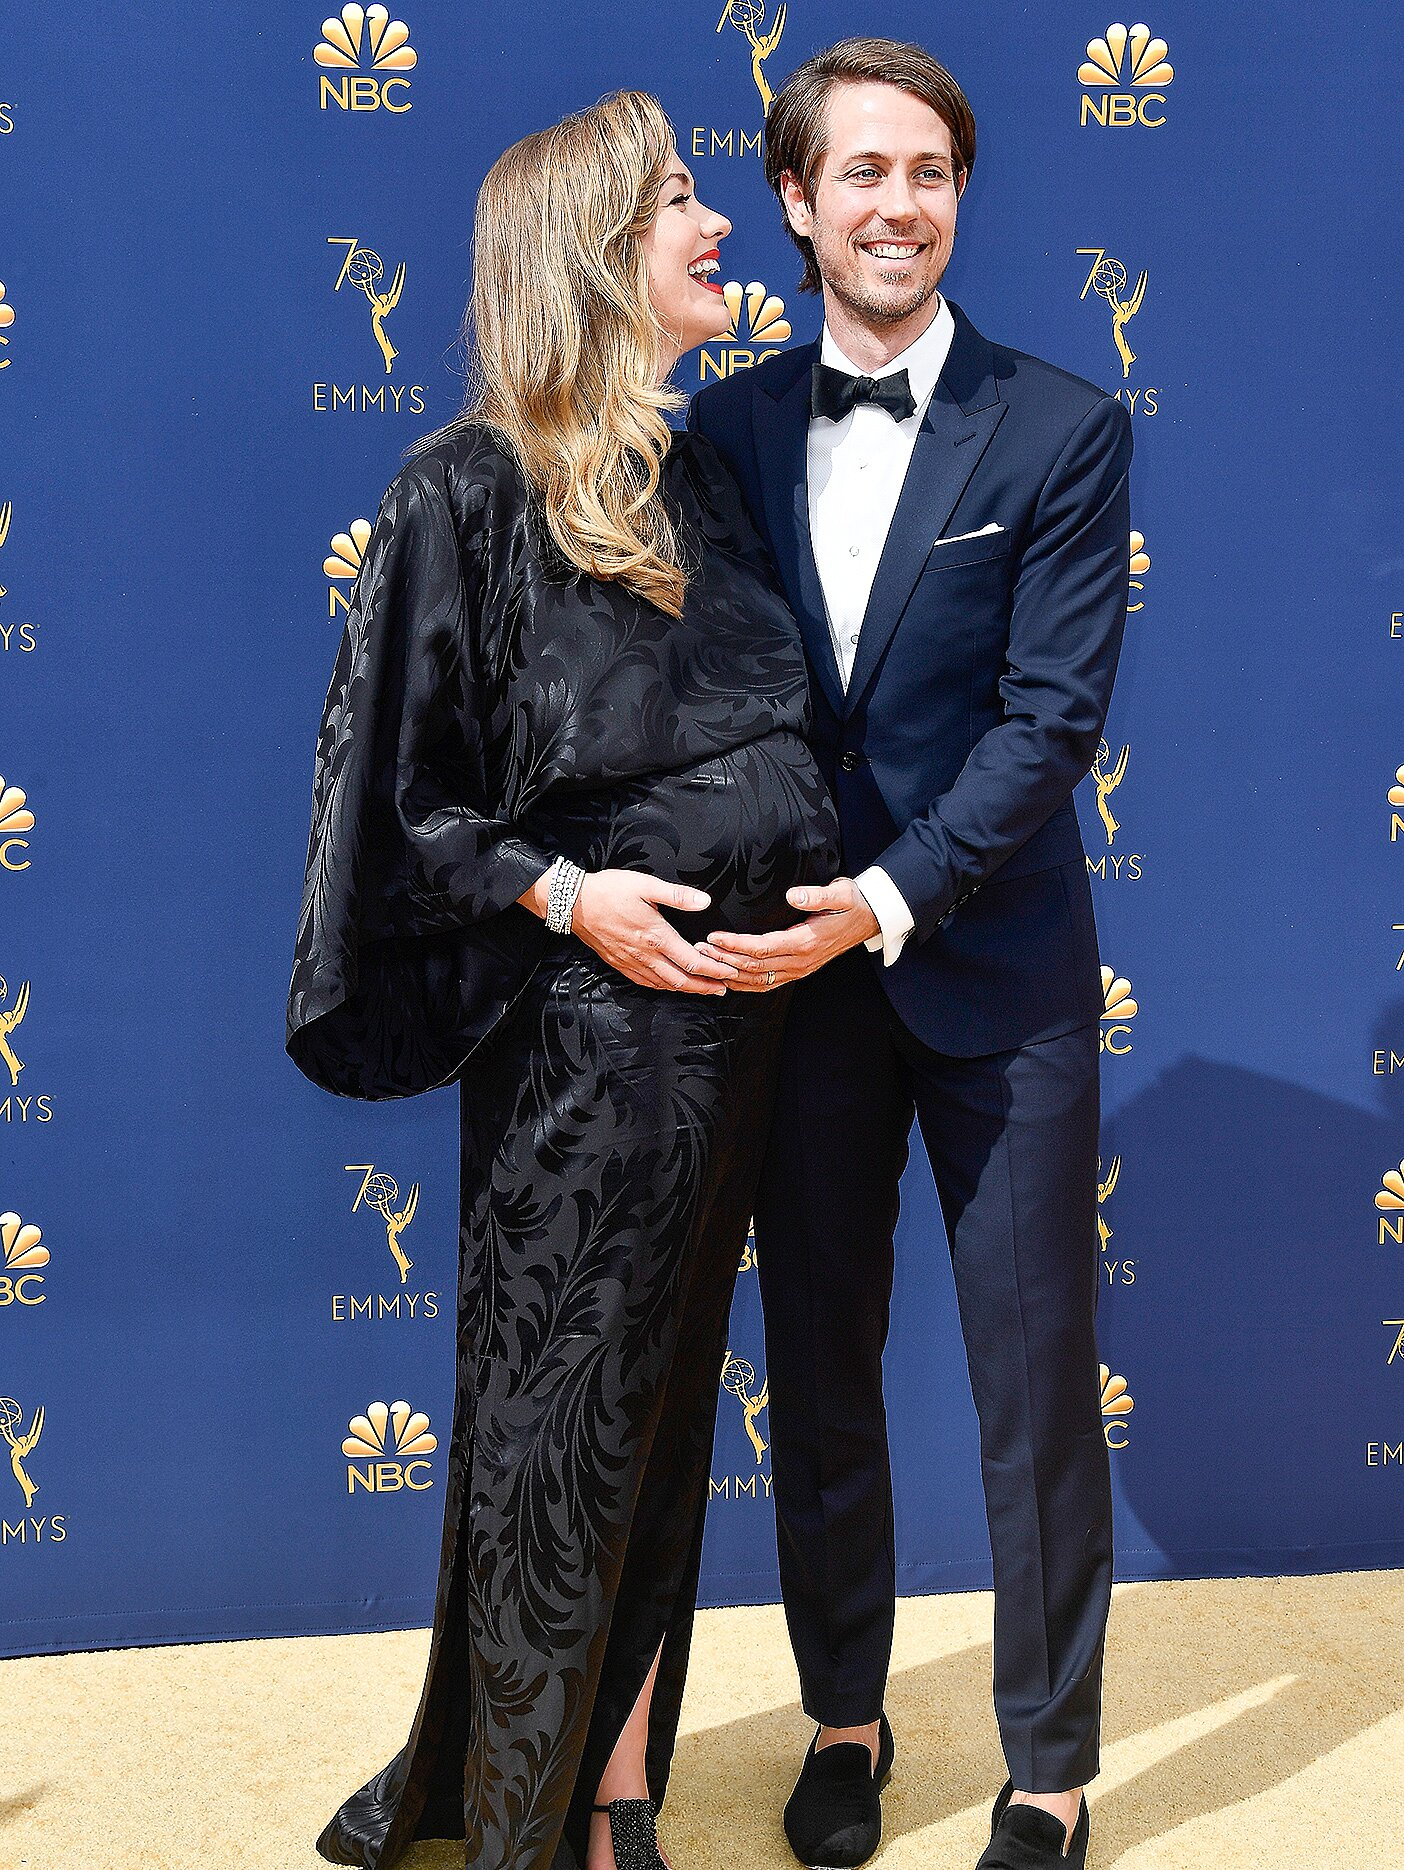 Yvonne Strahovski Welcomes First Child A Son With Husband Tim People Com The handmaid's tale's yvonne strahovski reveals she secretly married boyfriend tim loden over the summer. https people com parents yvonne strahovski welcomes son